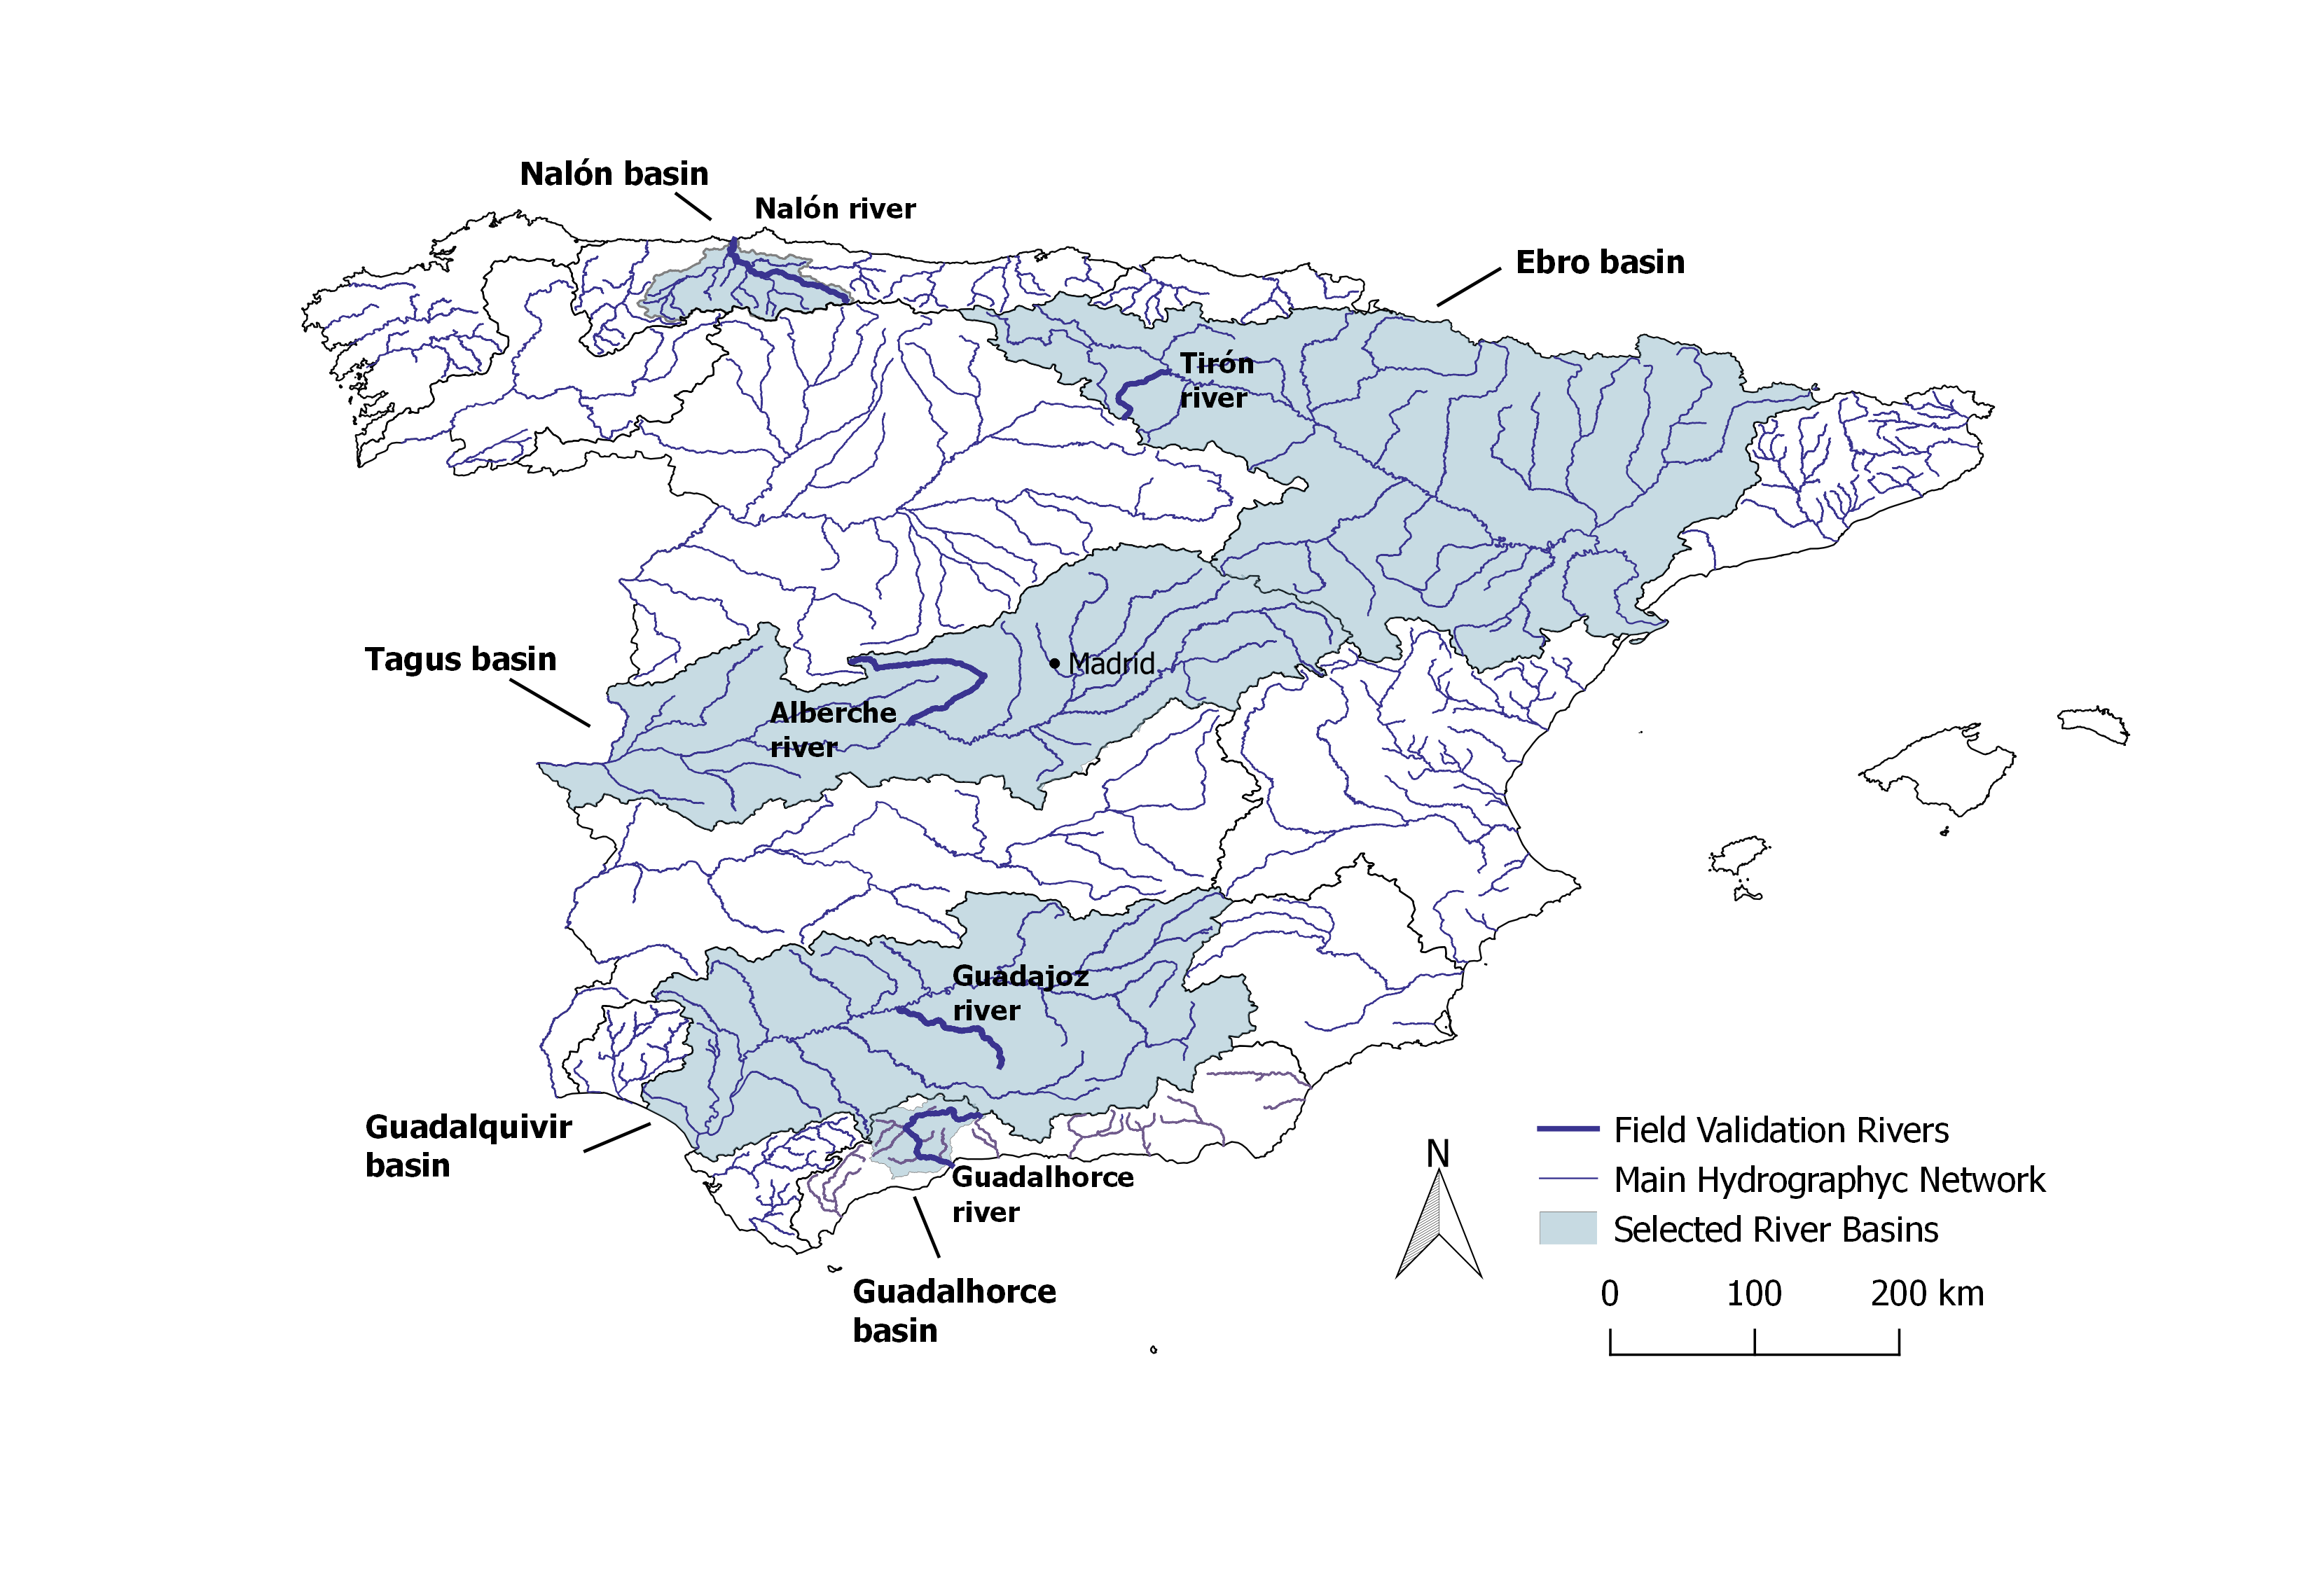 Map Of Spain Ebro River.Results Of The Field Validation In Spain 100 Obstacles In 100 Km Of